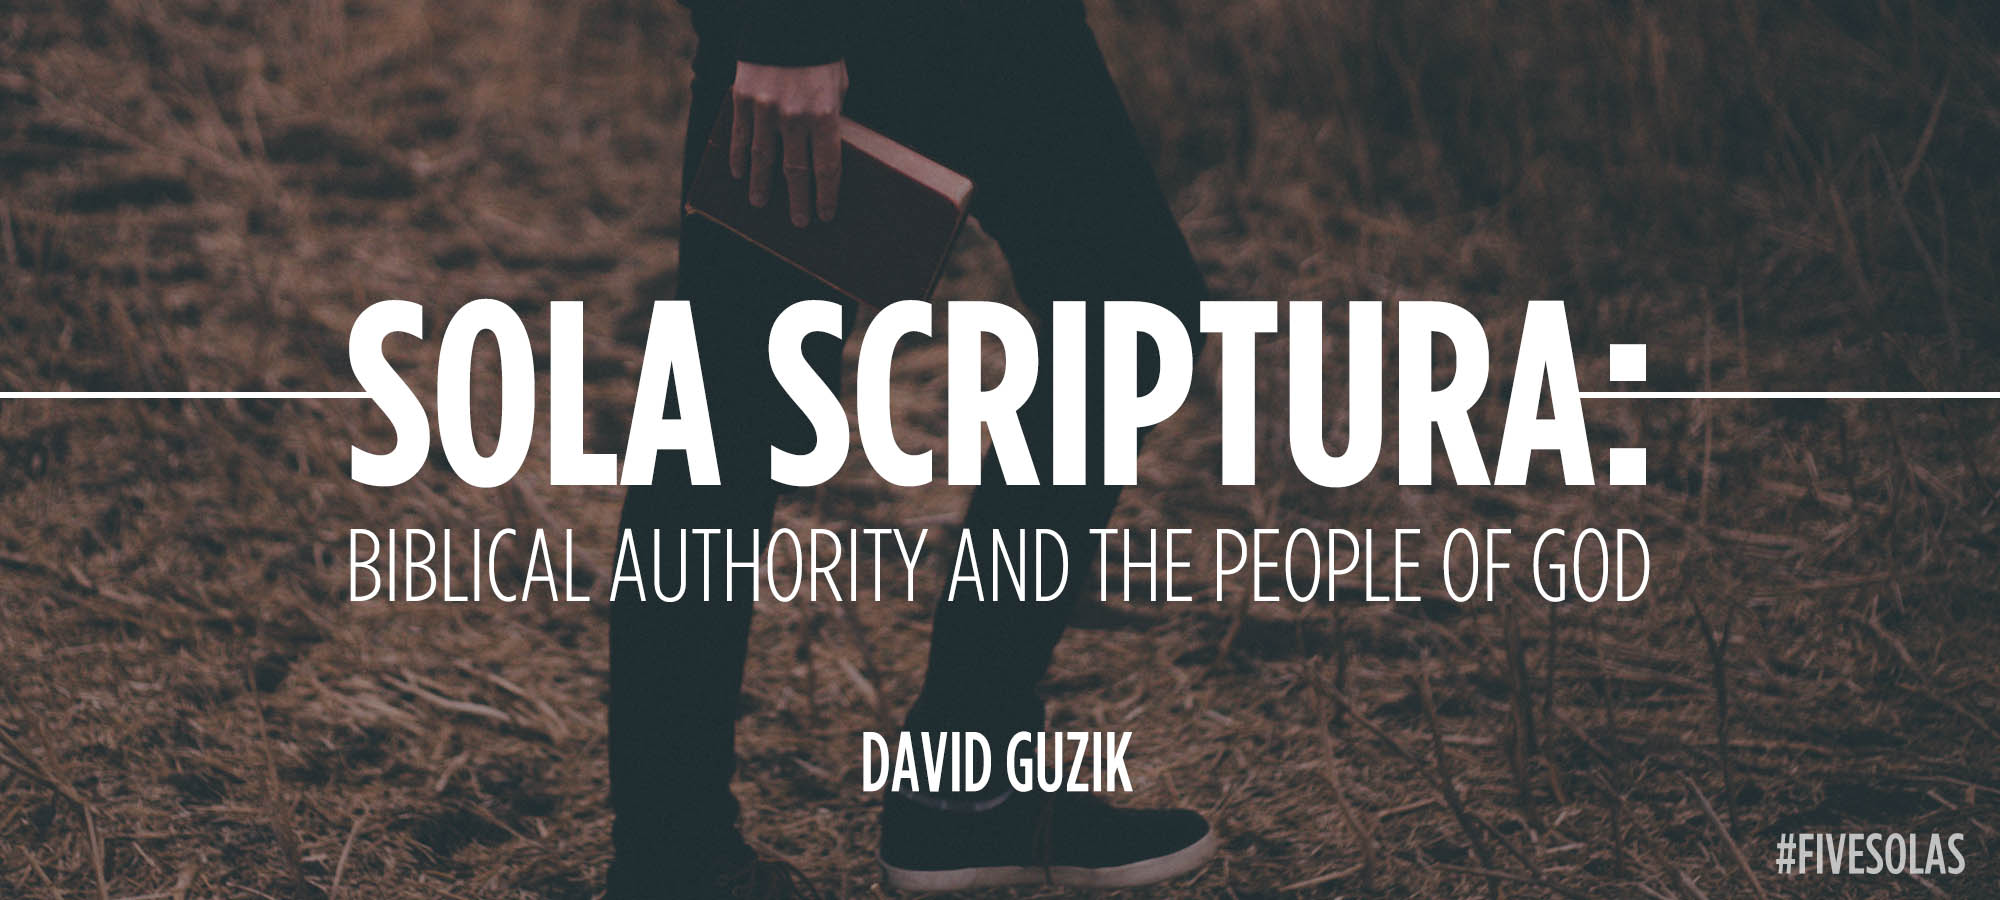 Sola Scriptura: Biblical Authority and the People of God